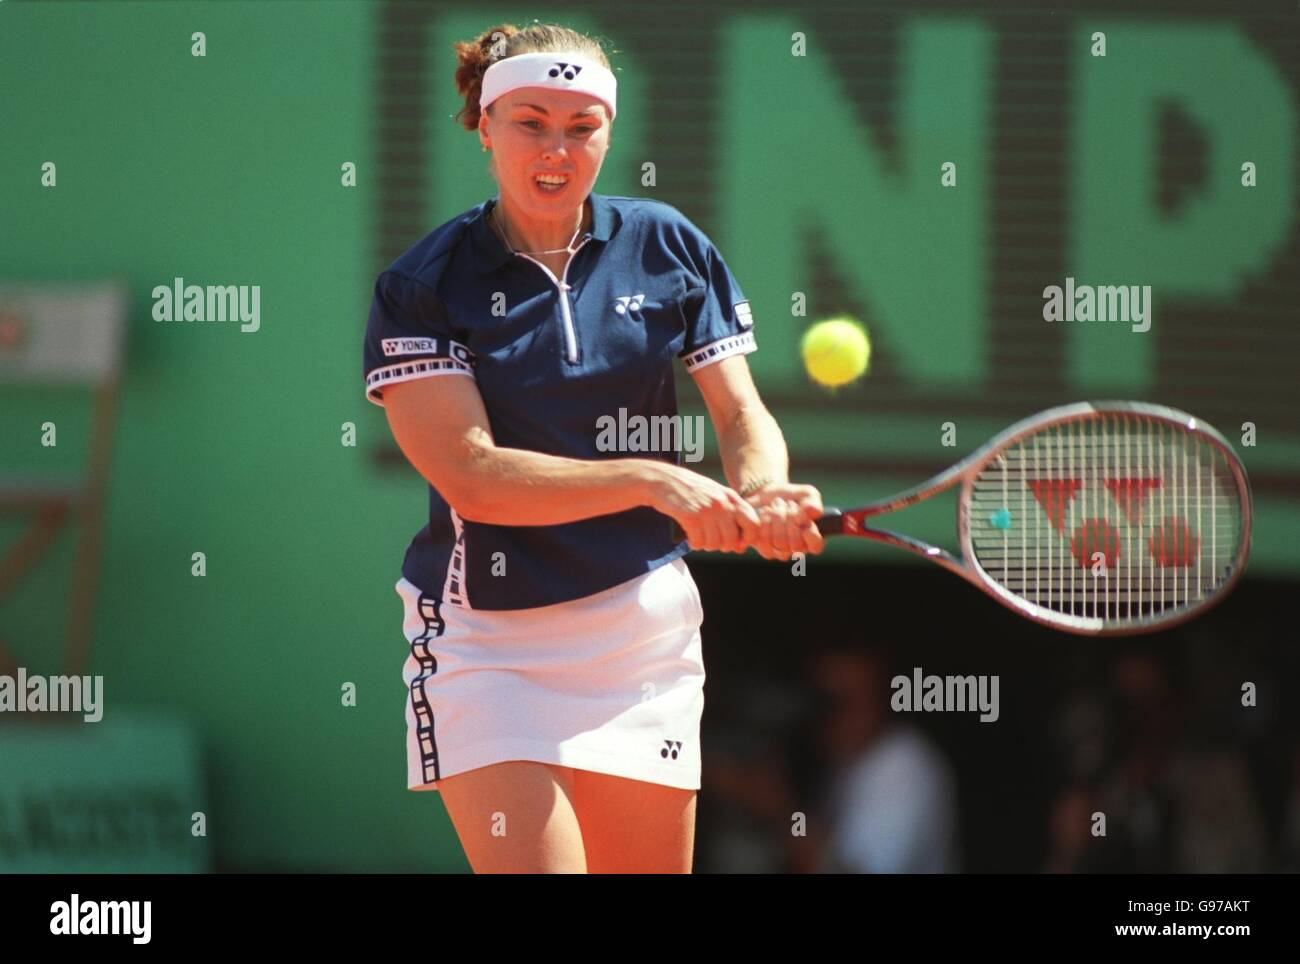 french open womens singles schedule